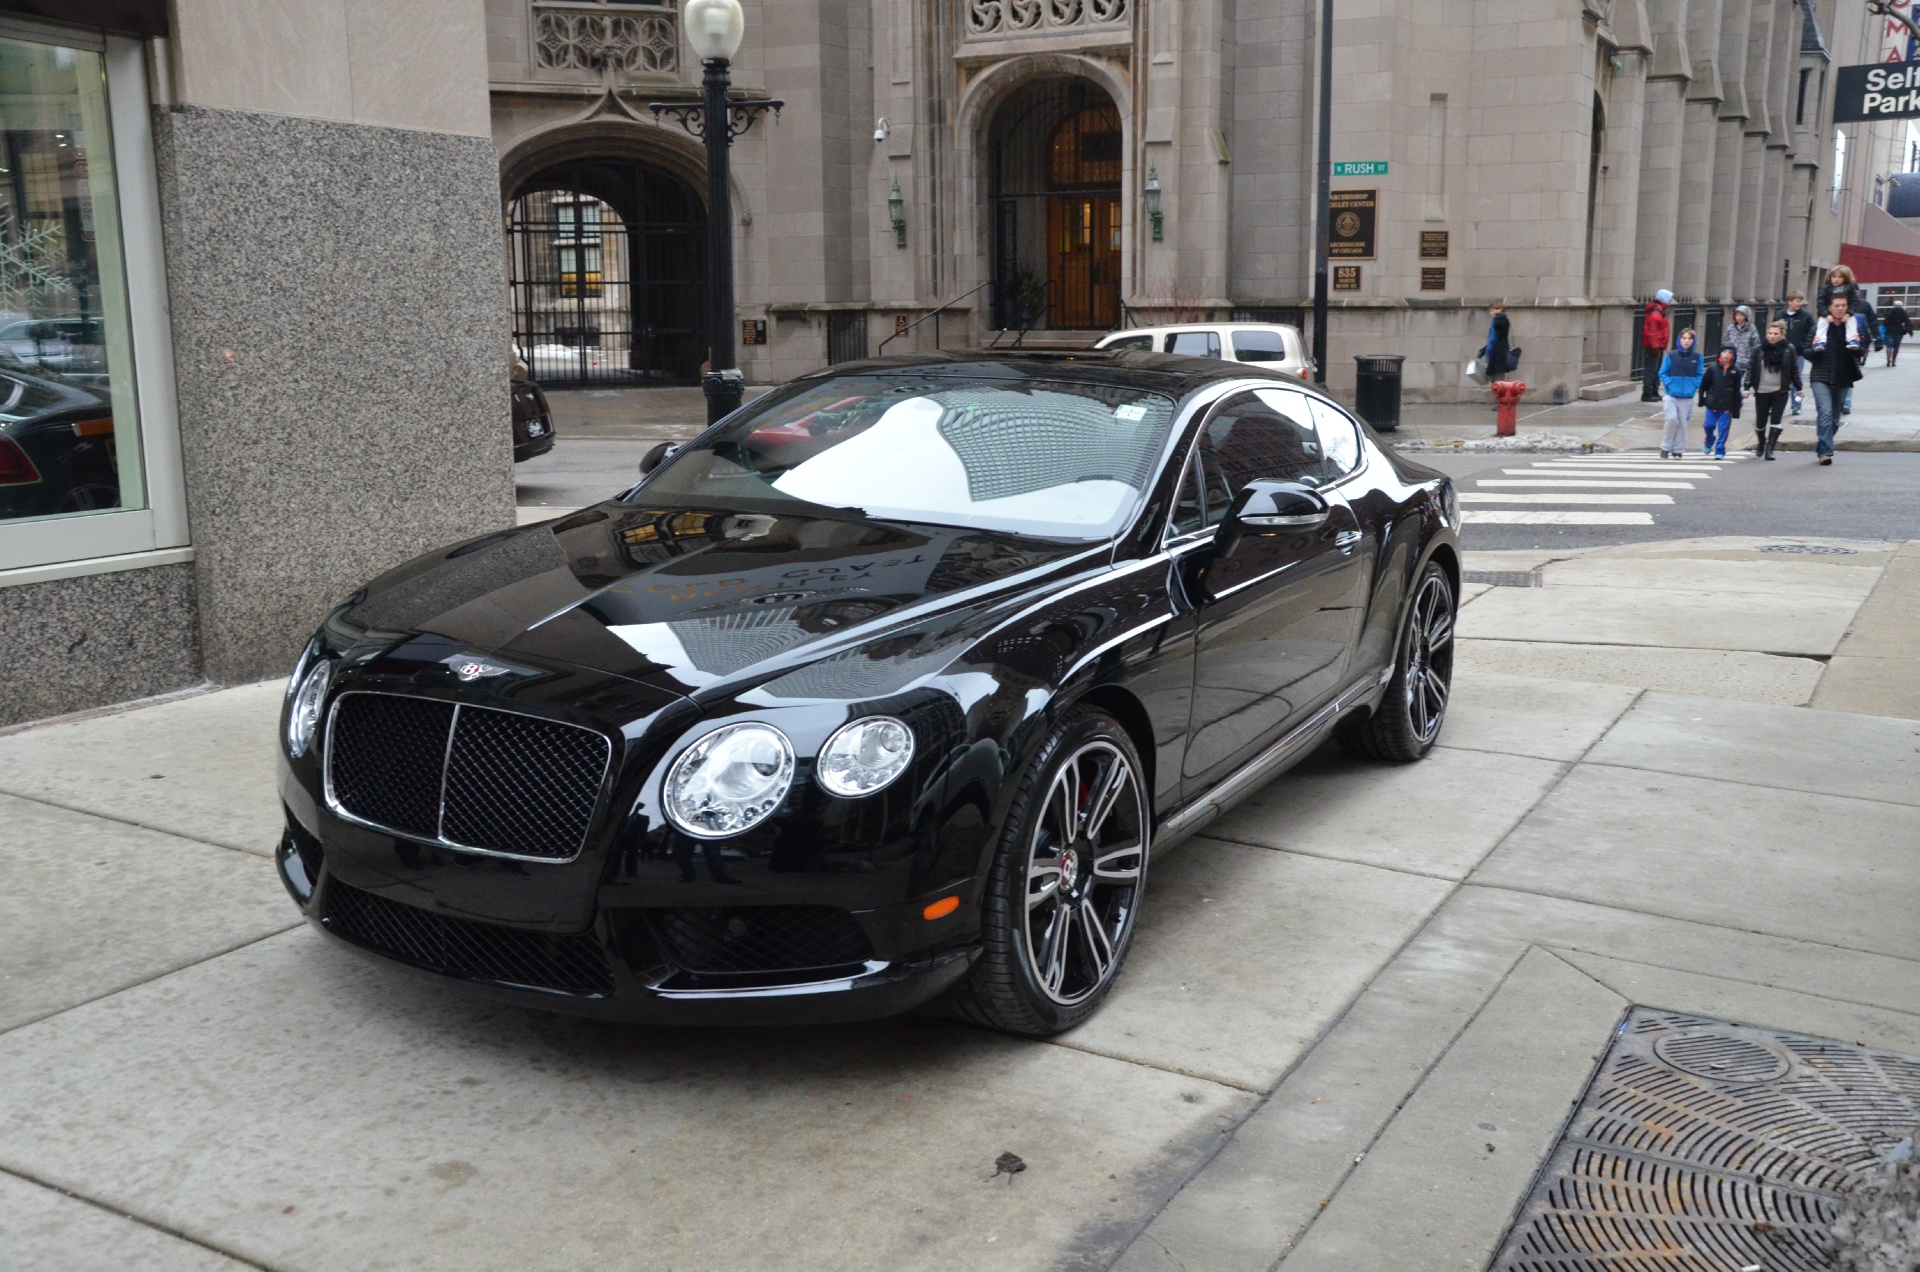 2014 Bentley Continental Gt V8 Stock B557 S For Sale